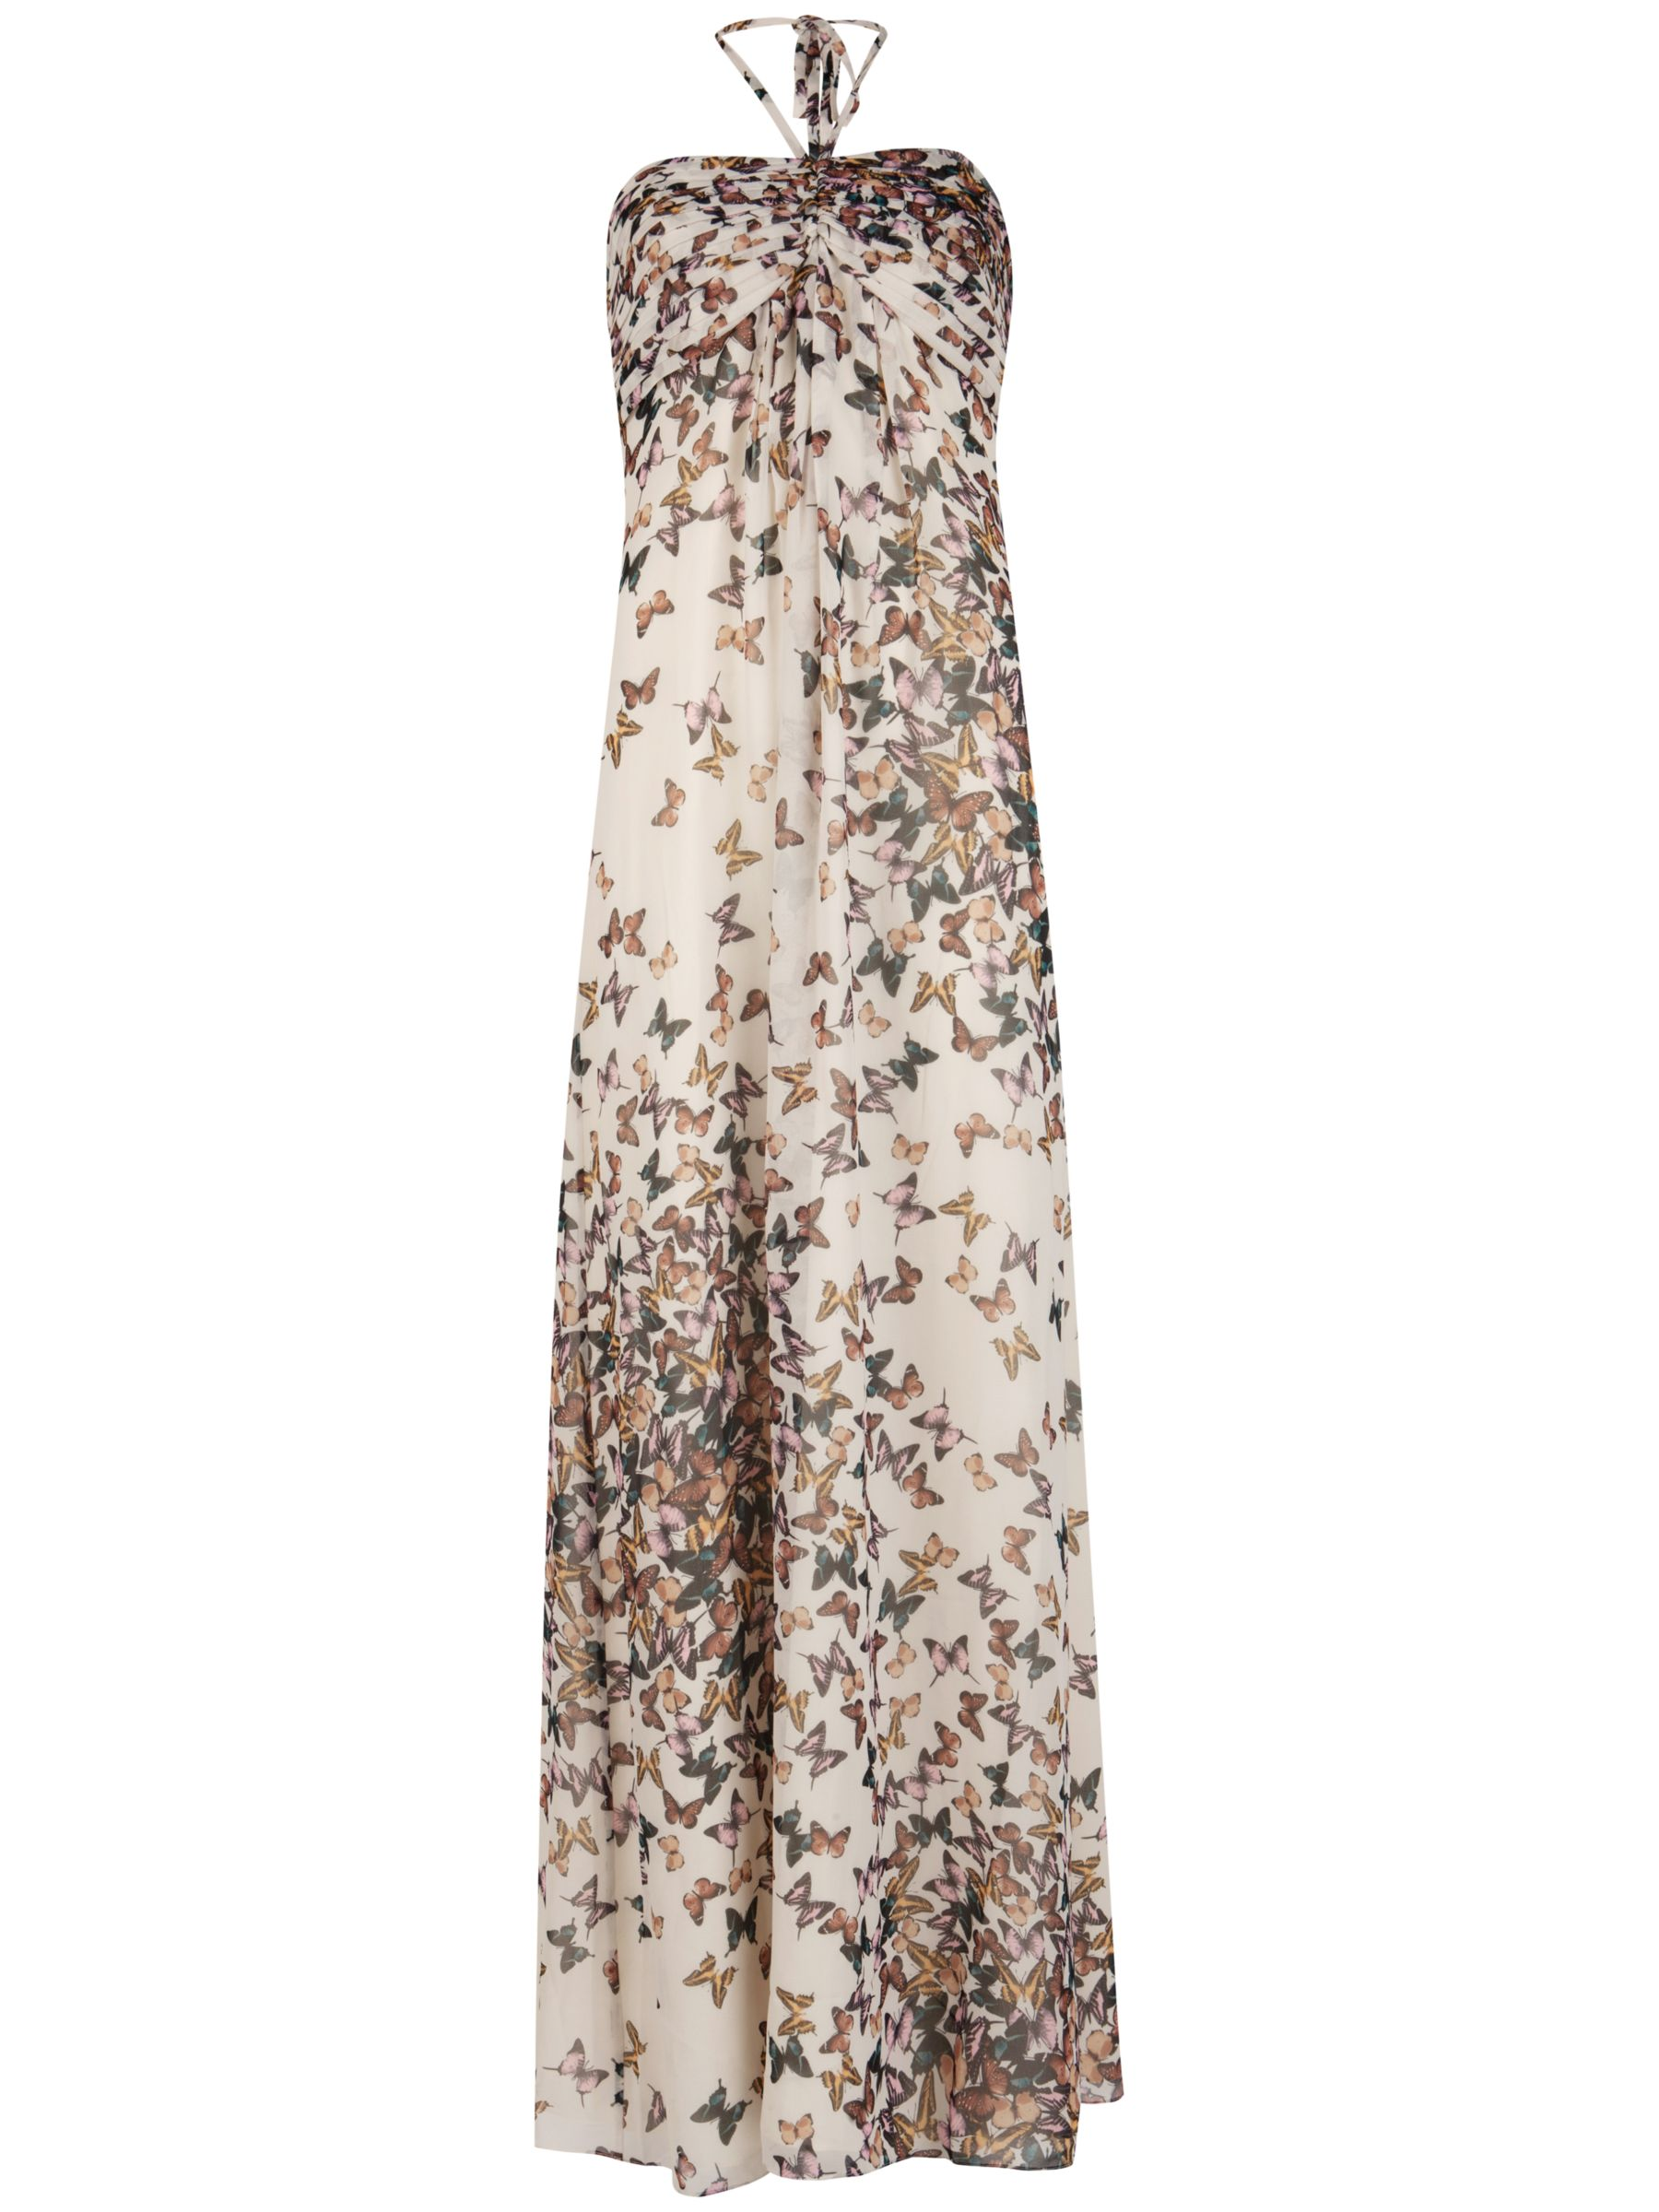 ted baker calipso butterfly print maxi dress cream, ted, baker, calipso, butterfly, print, maxi, dress, cream, ted baker, 1|2|0|5|4|3, women, womens dresses, gifts, wedding, wedding clothing, female guests, fashion magazine, womenswear, men, brands l-z, 1844067